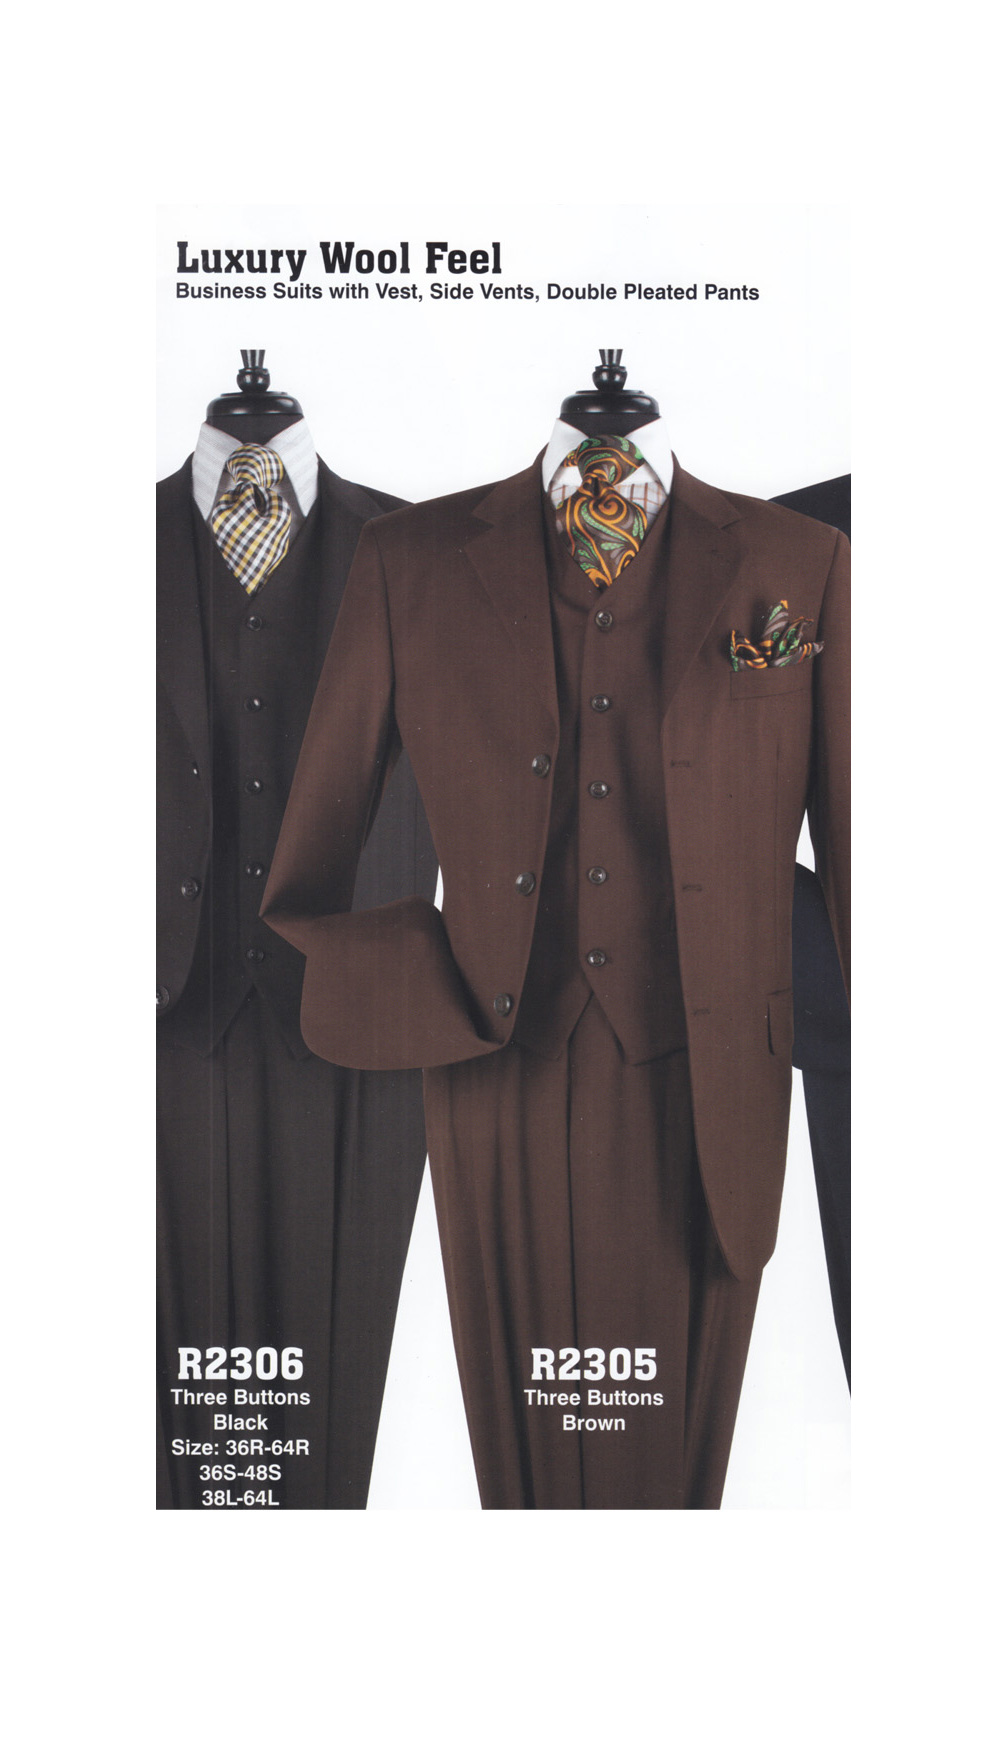 High Fashion Men Suits R2305